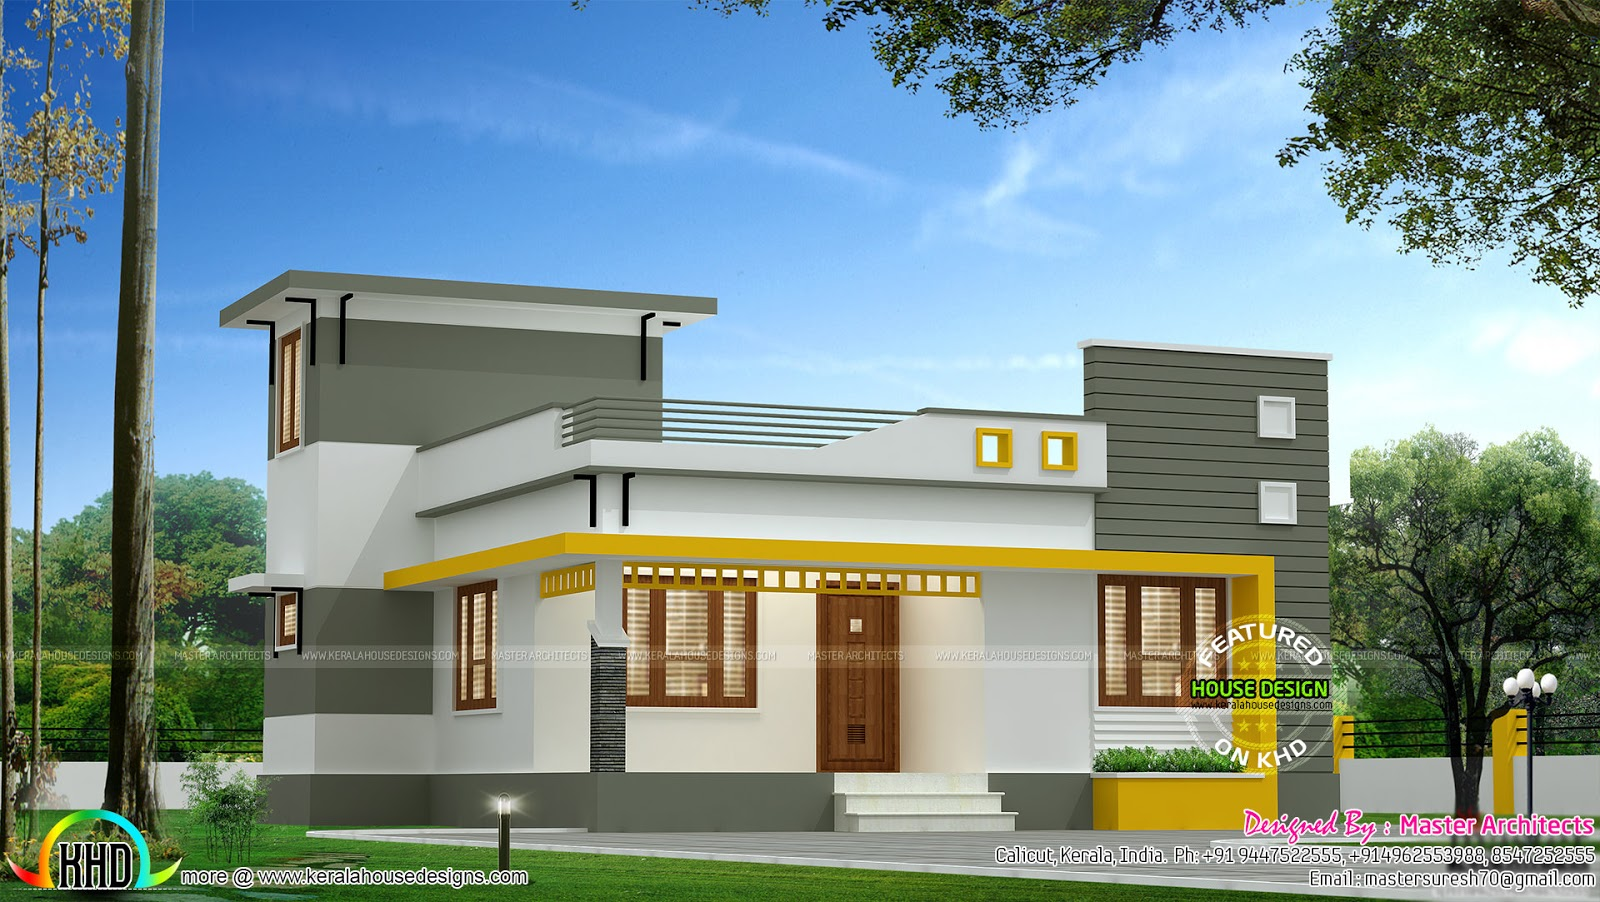 Gandul 3 bedroom single floor modern architecture home for New model contemporary house